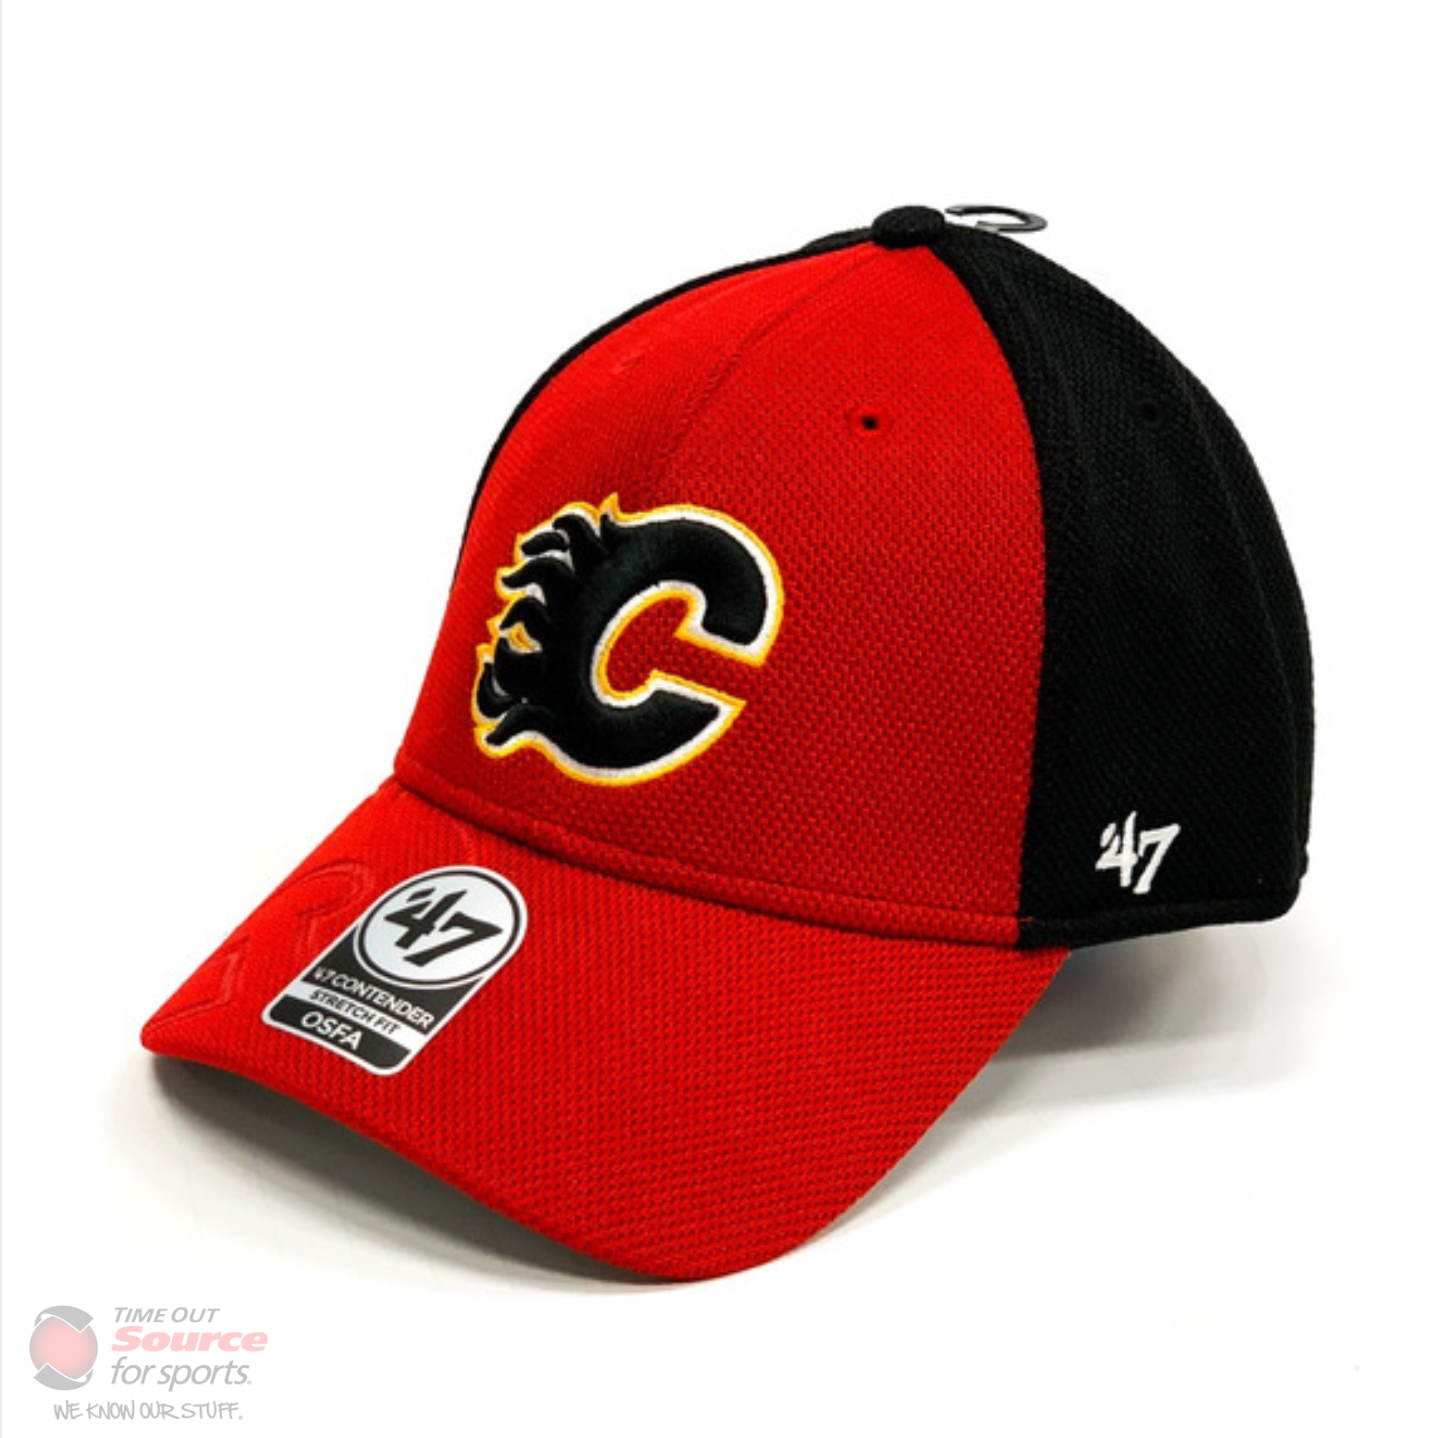 '47 Nexum Contender Stretch Fit Hat- Calgary Flames